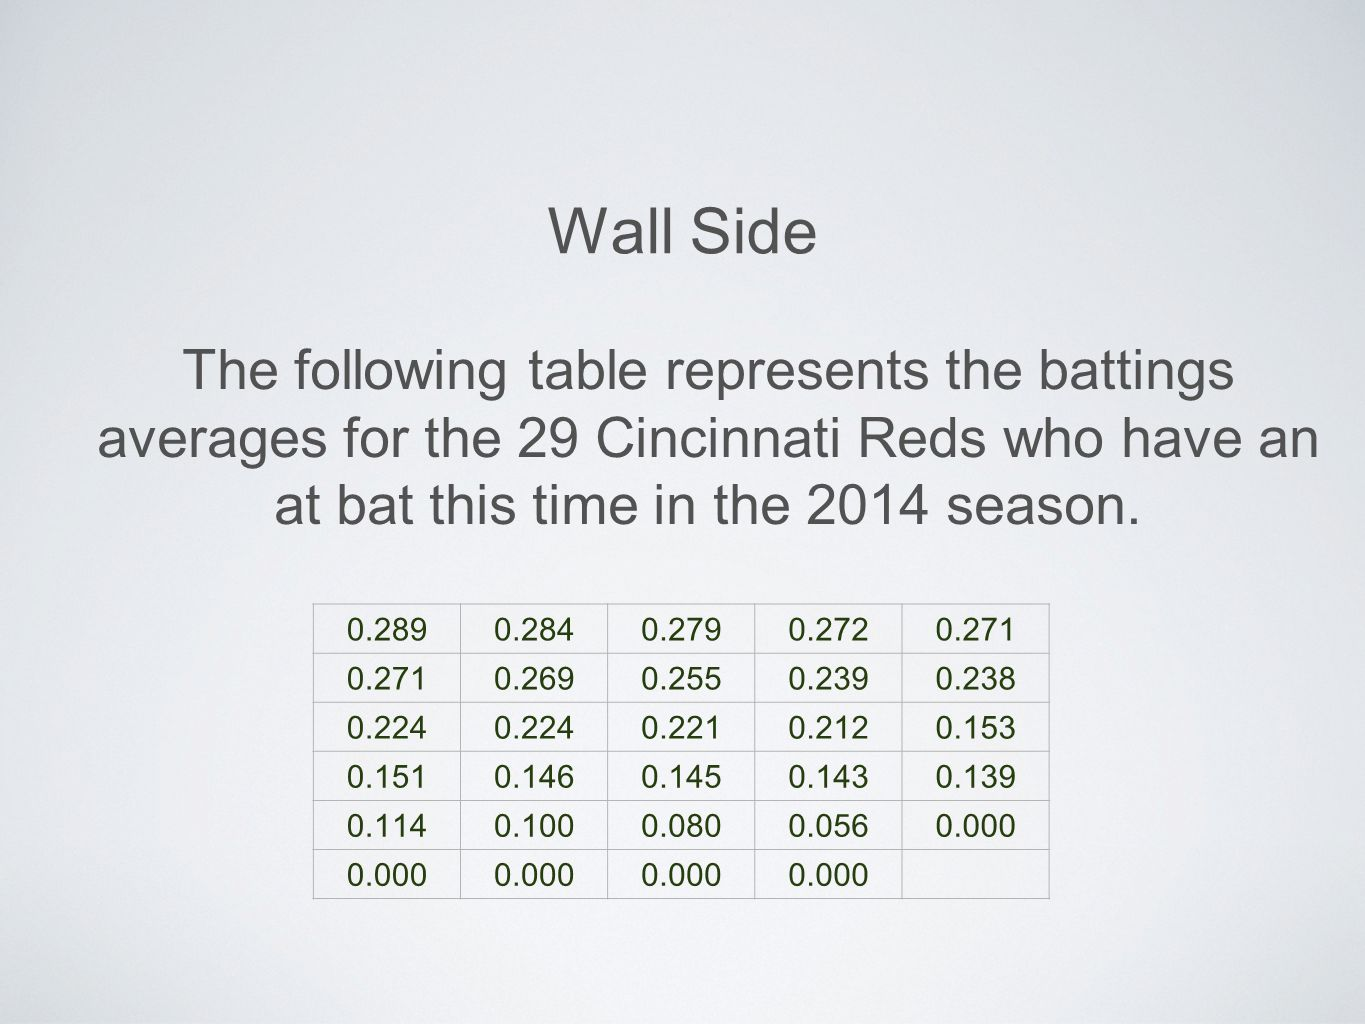 Wall Side The following table represents the battings averages for the 29 Cincinnati Reds who have an at bat this time in the 2014 season.